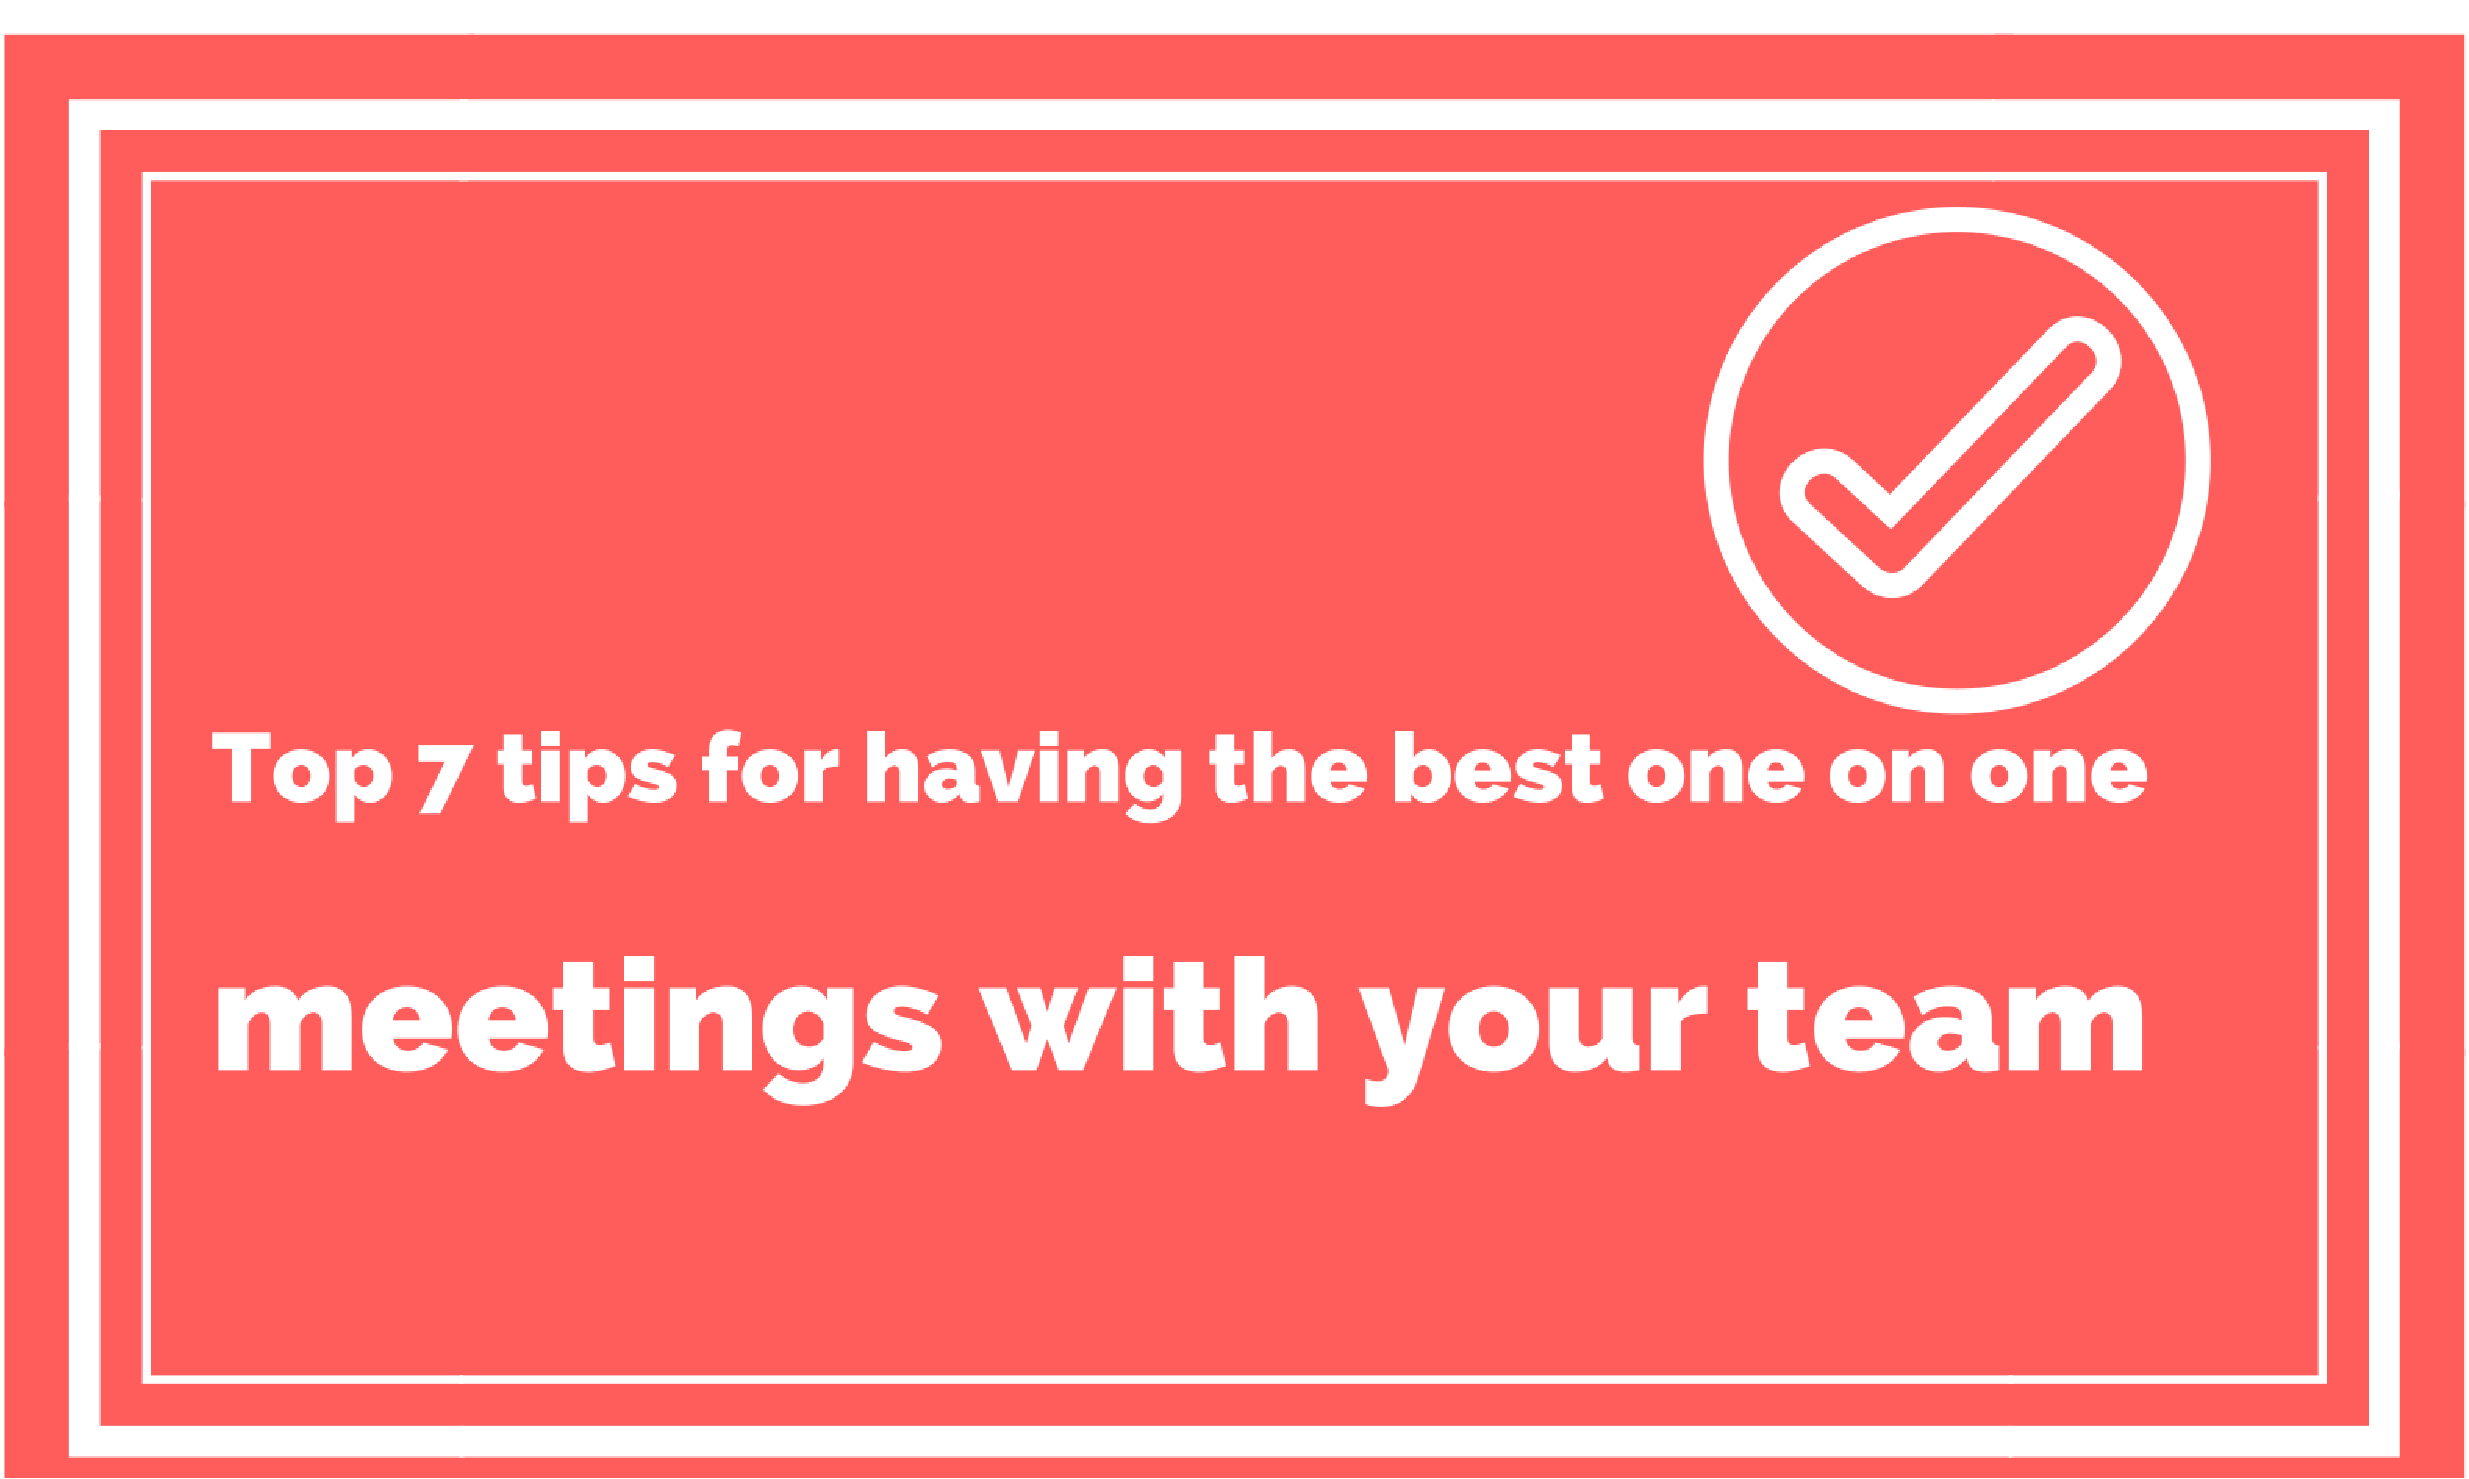 Top 7 Tips For Having The Best One On One Meetings With Your Team